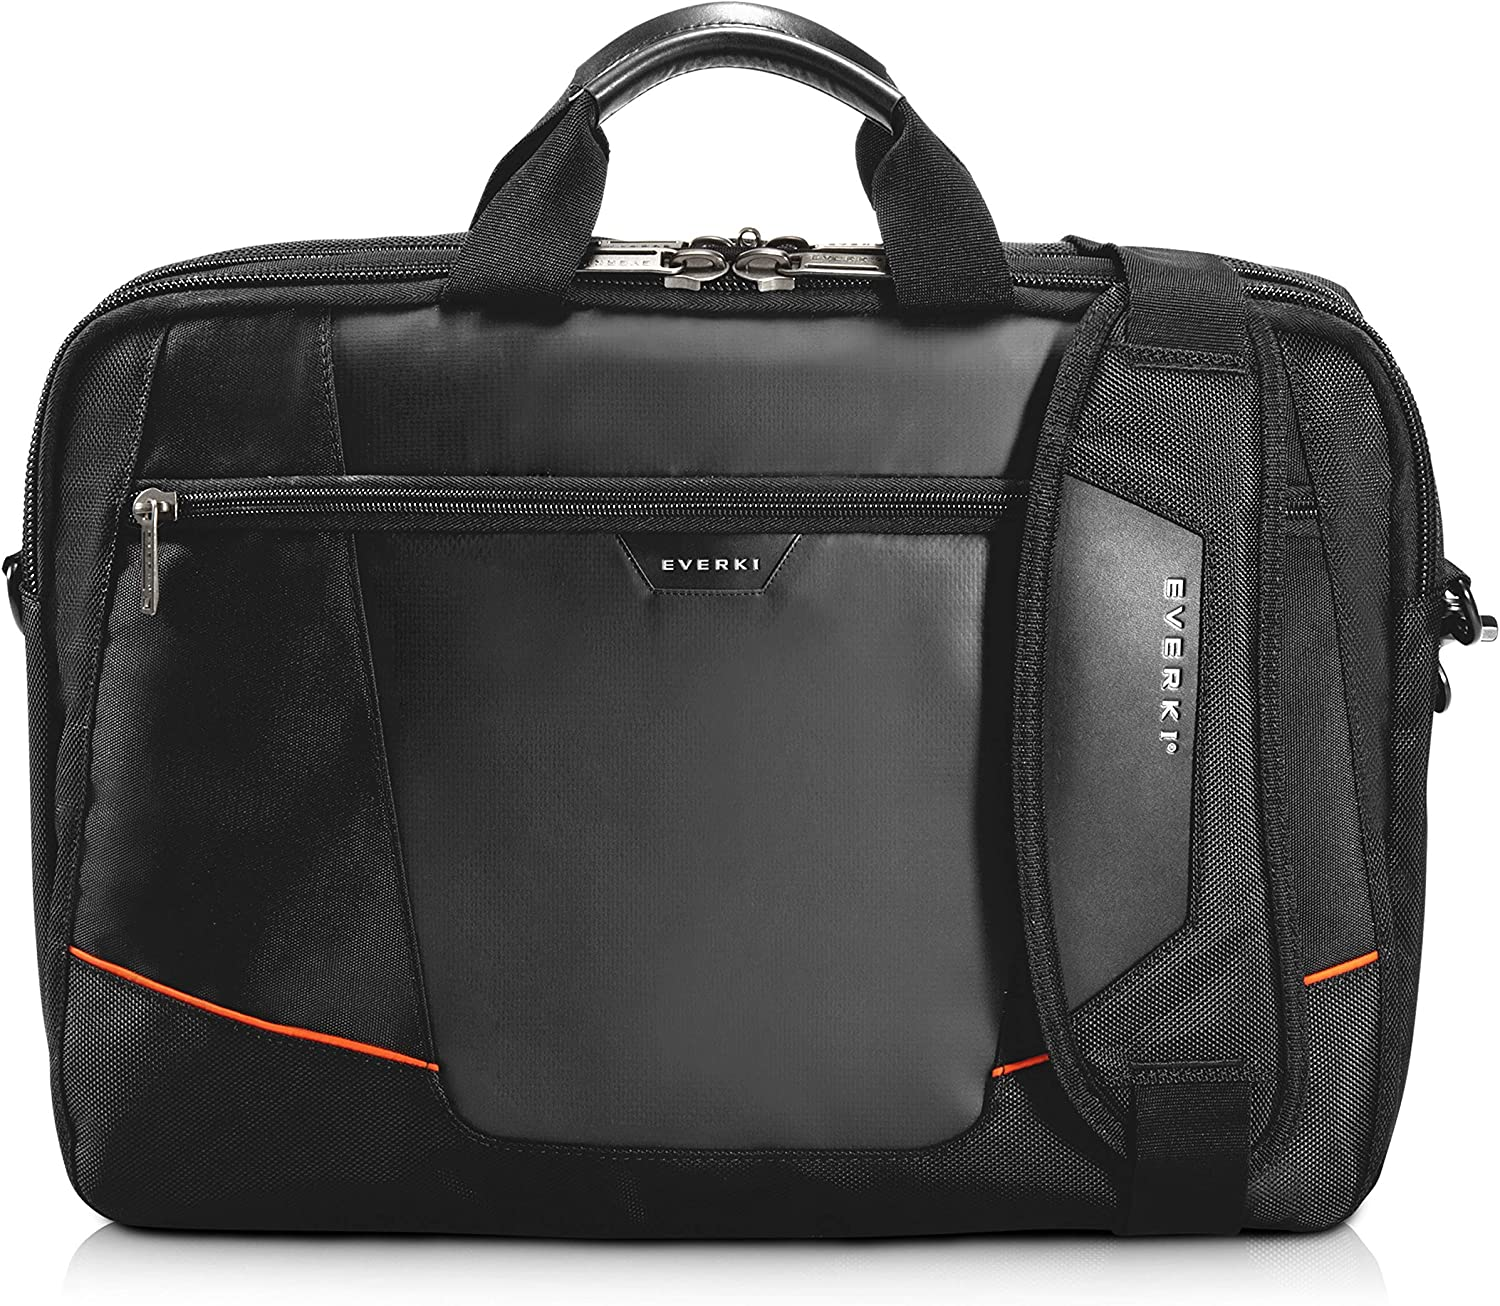 Everki Flight Checkpoint Friendly Laptop Bag/Briefcase for 16-Inch MacBook (EKB419)